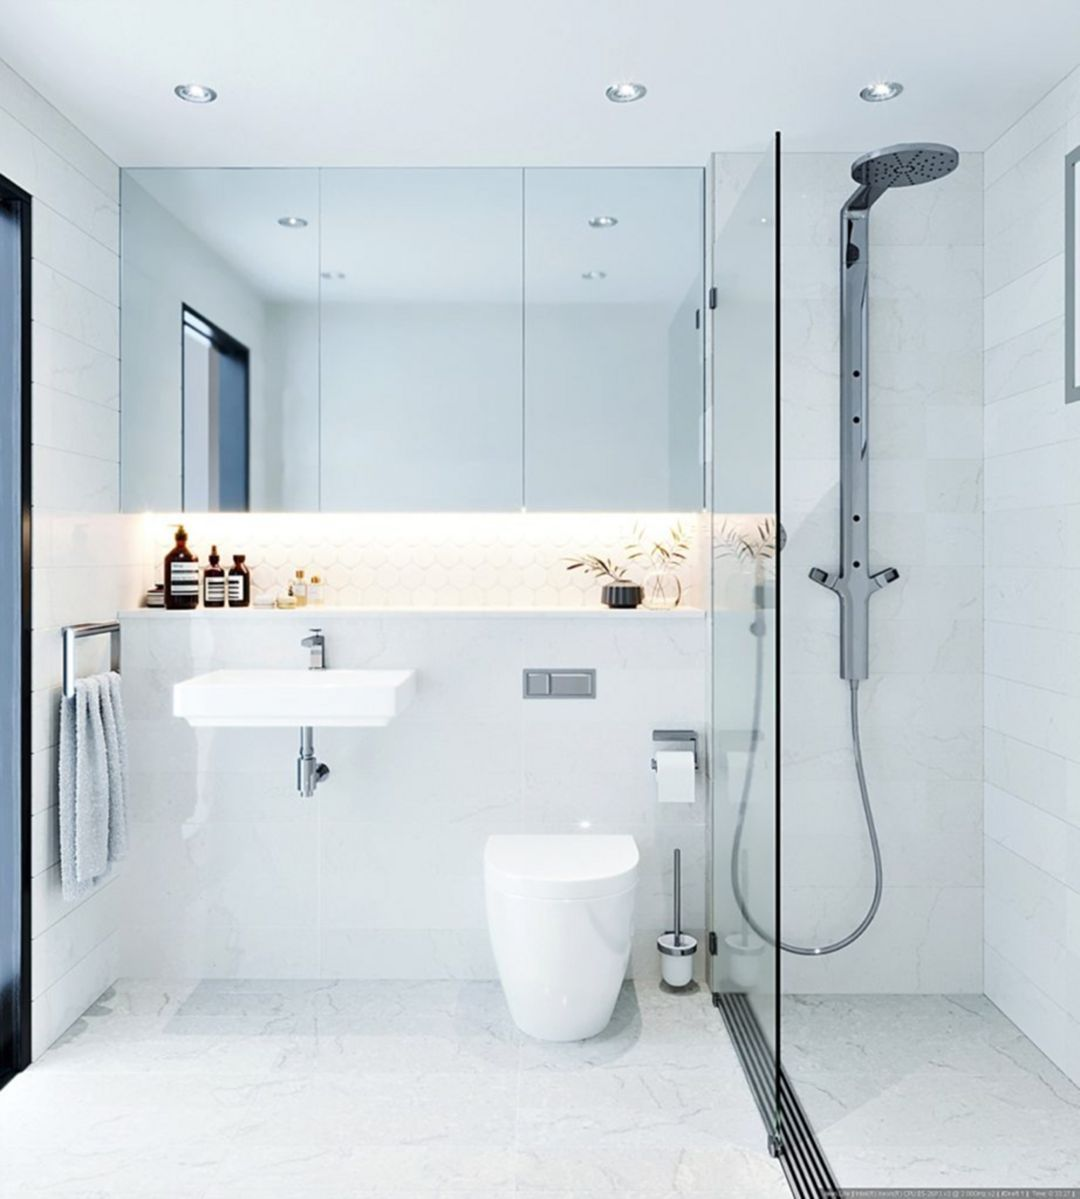 Best Minimalist Bathroom Designs: 10 Best Amazing Minimalist Bathroom Design Ideas For Your